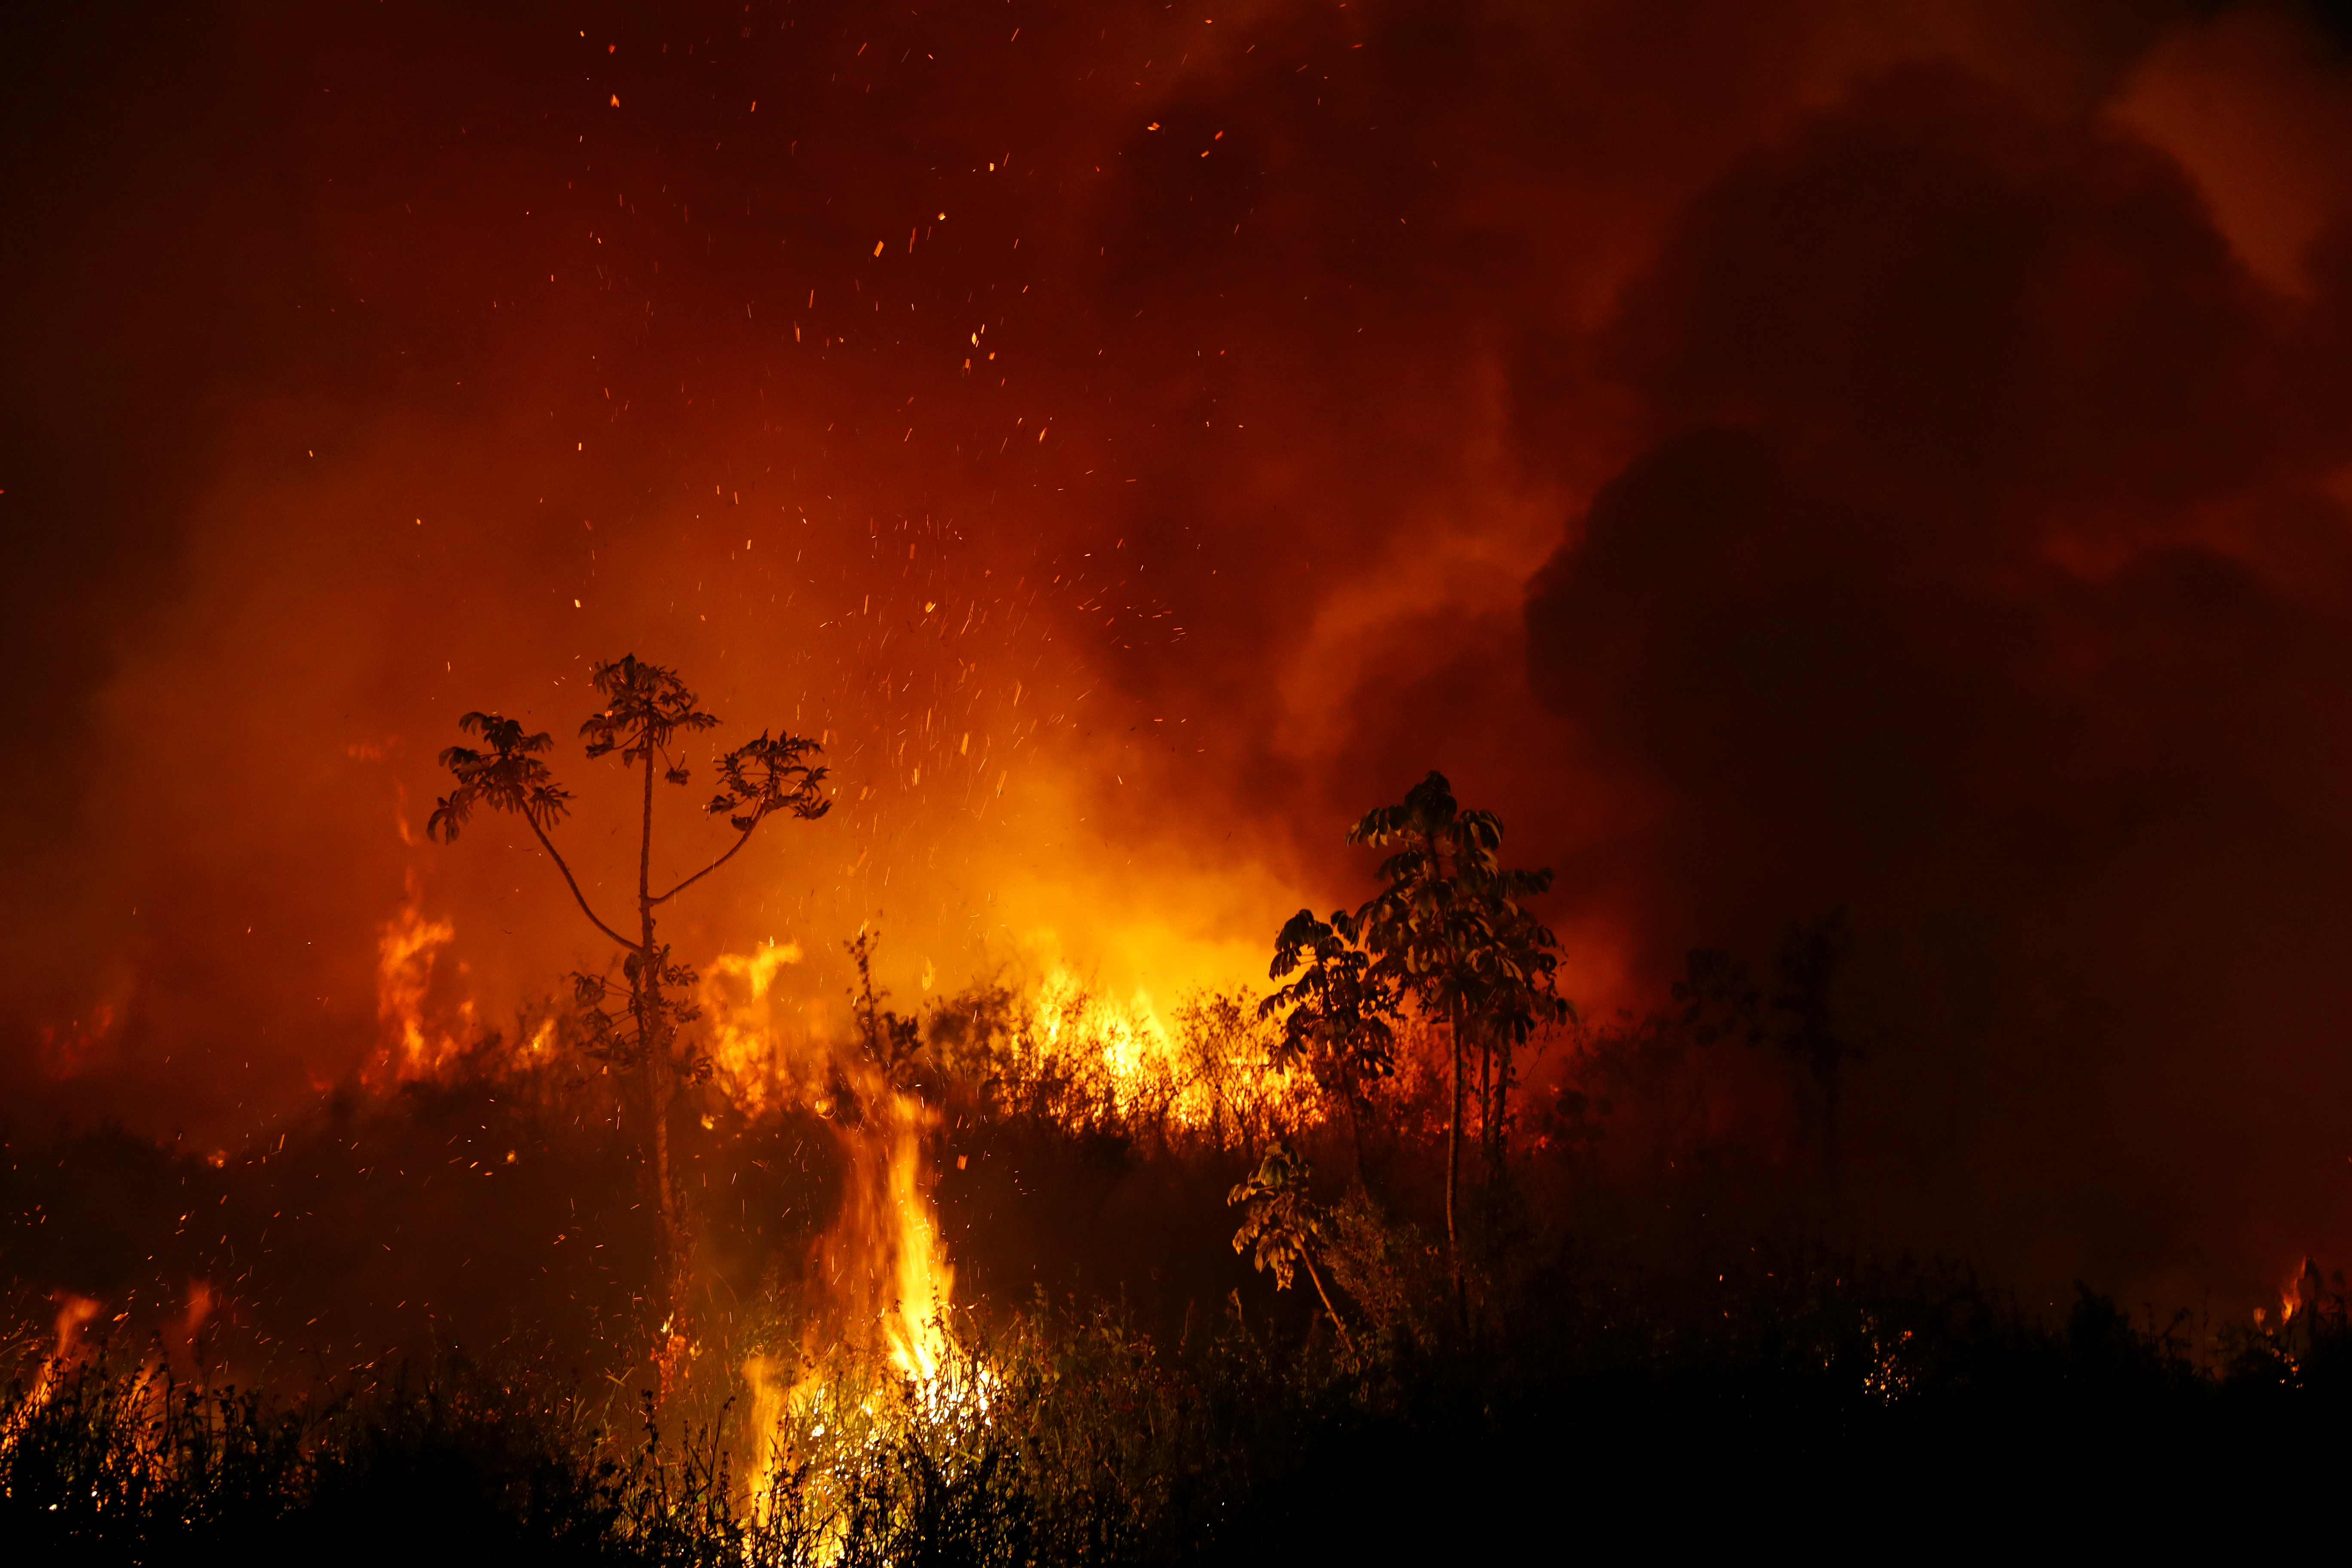 Smoke from a fire rises into the air as trees burn amongst vegetation in the Pantanal, the world's largest wetland, in Pocone, Mato Grosso state, Brazil, September 3, 2020. REUTERS/Amanda Perobelli